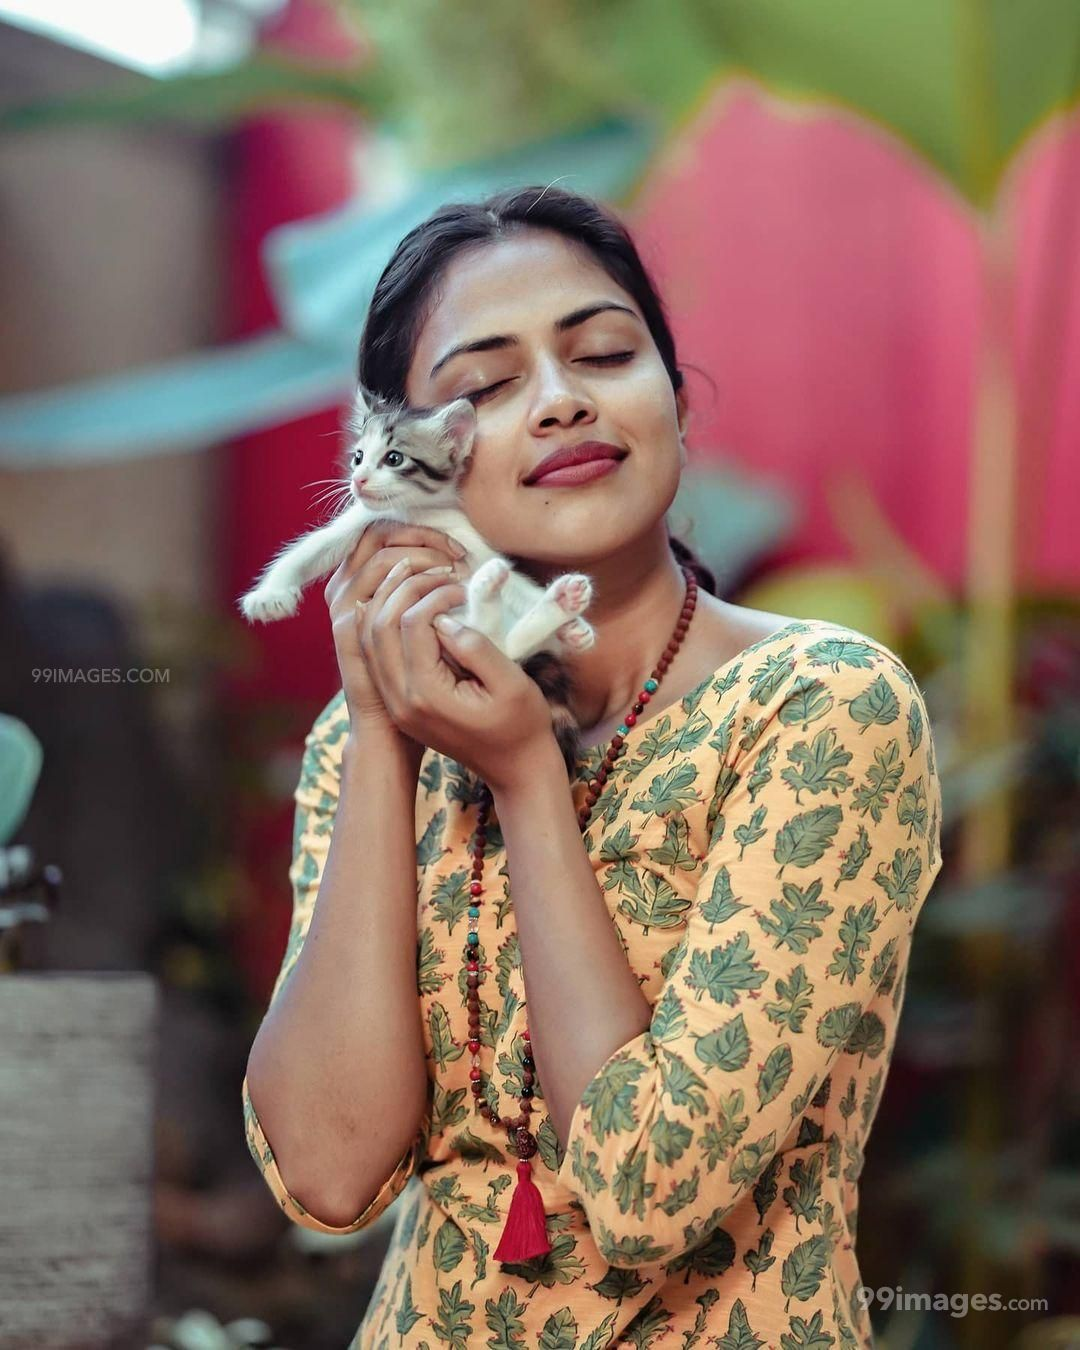 Amala Paul HD Wallpapers (Desktop Background / Android / iPhone) (1080p, 4k)